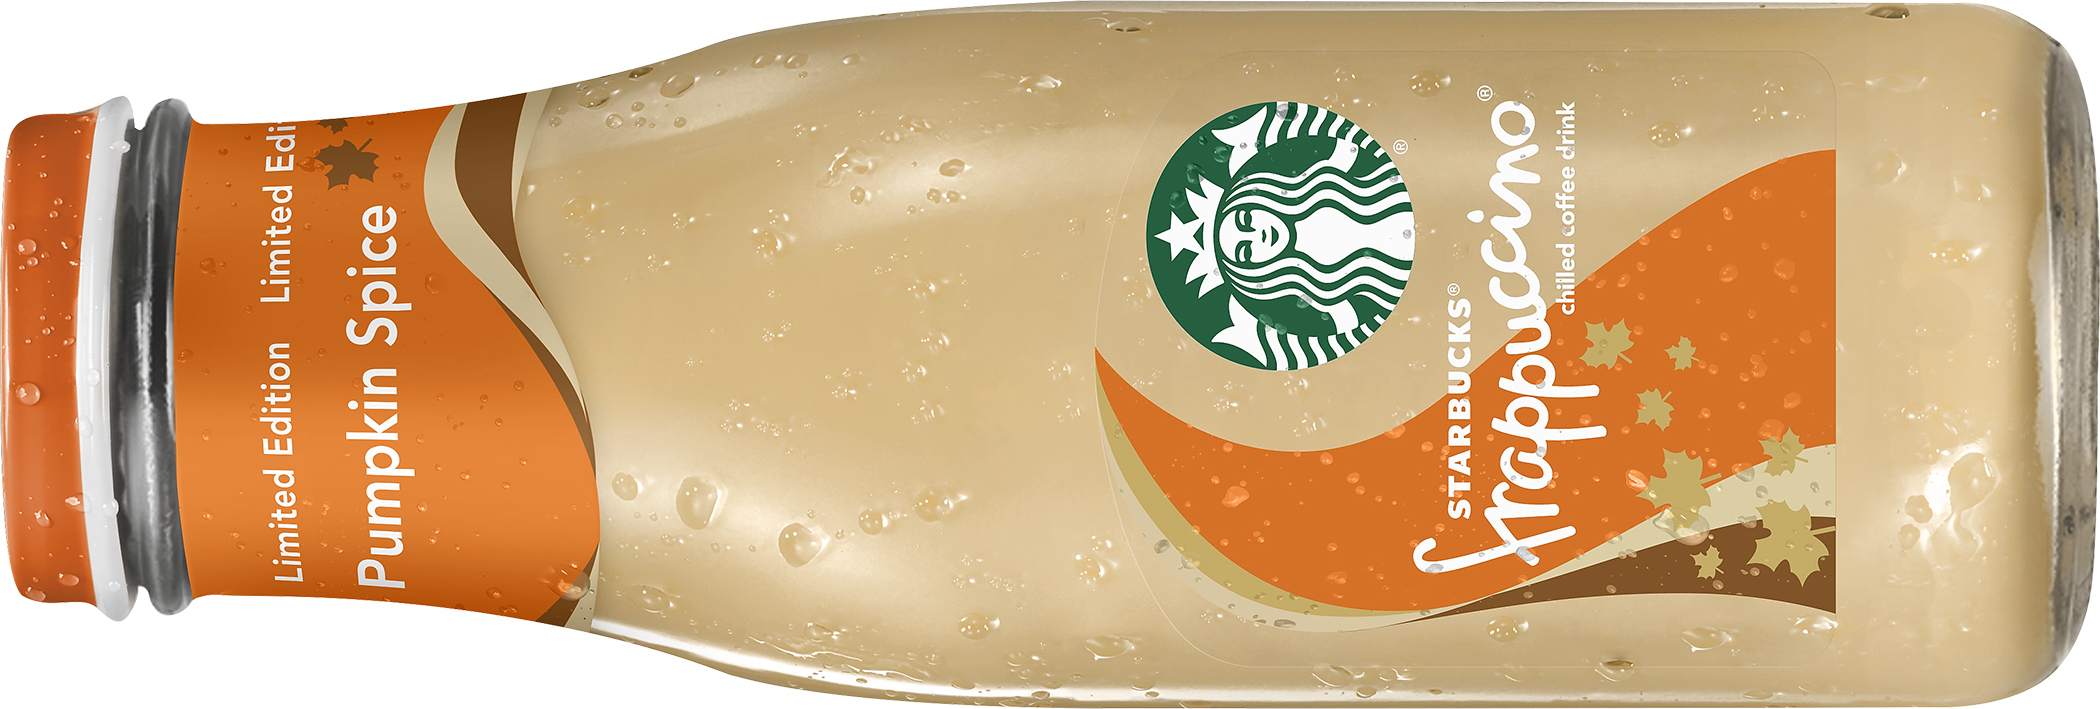 Bottled Starbucks Pumpkin Spice Frappuccinos Will Be Everywhere, Not Just Costco